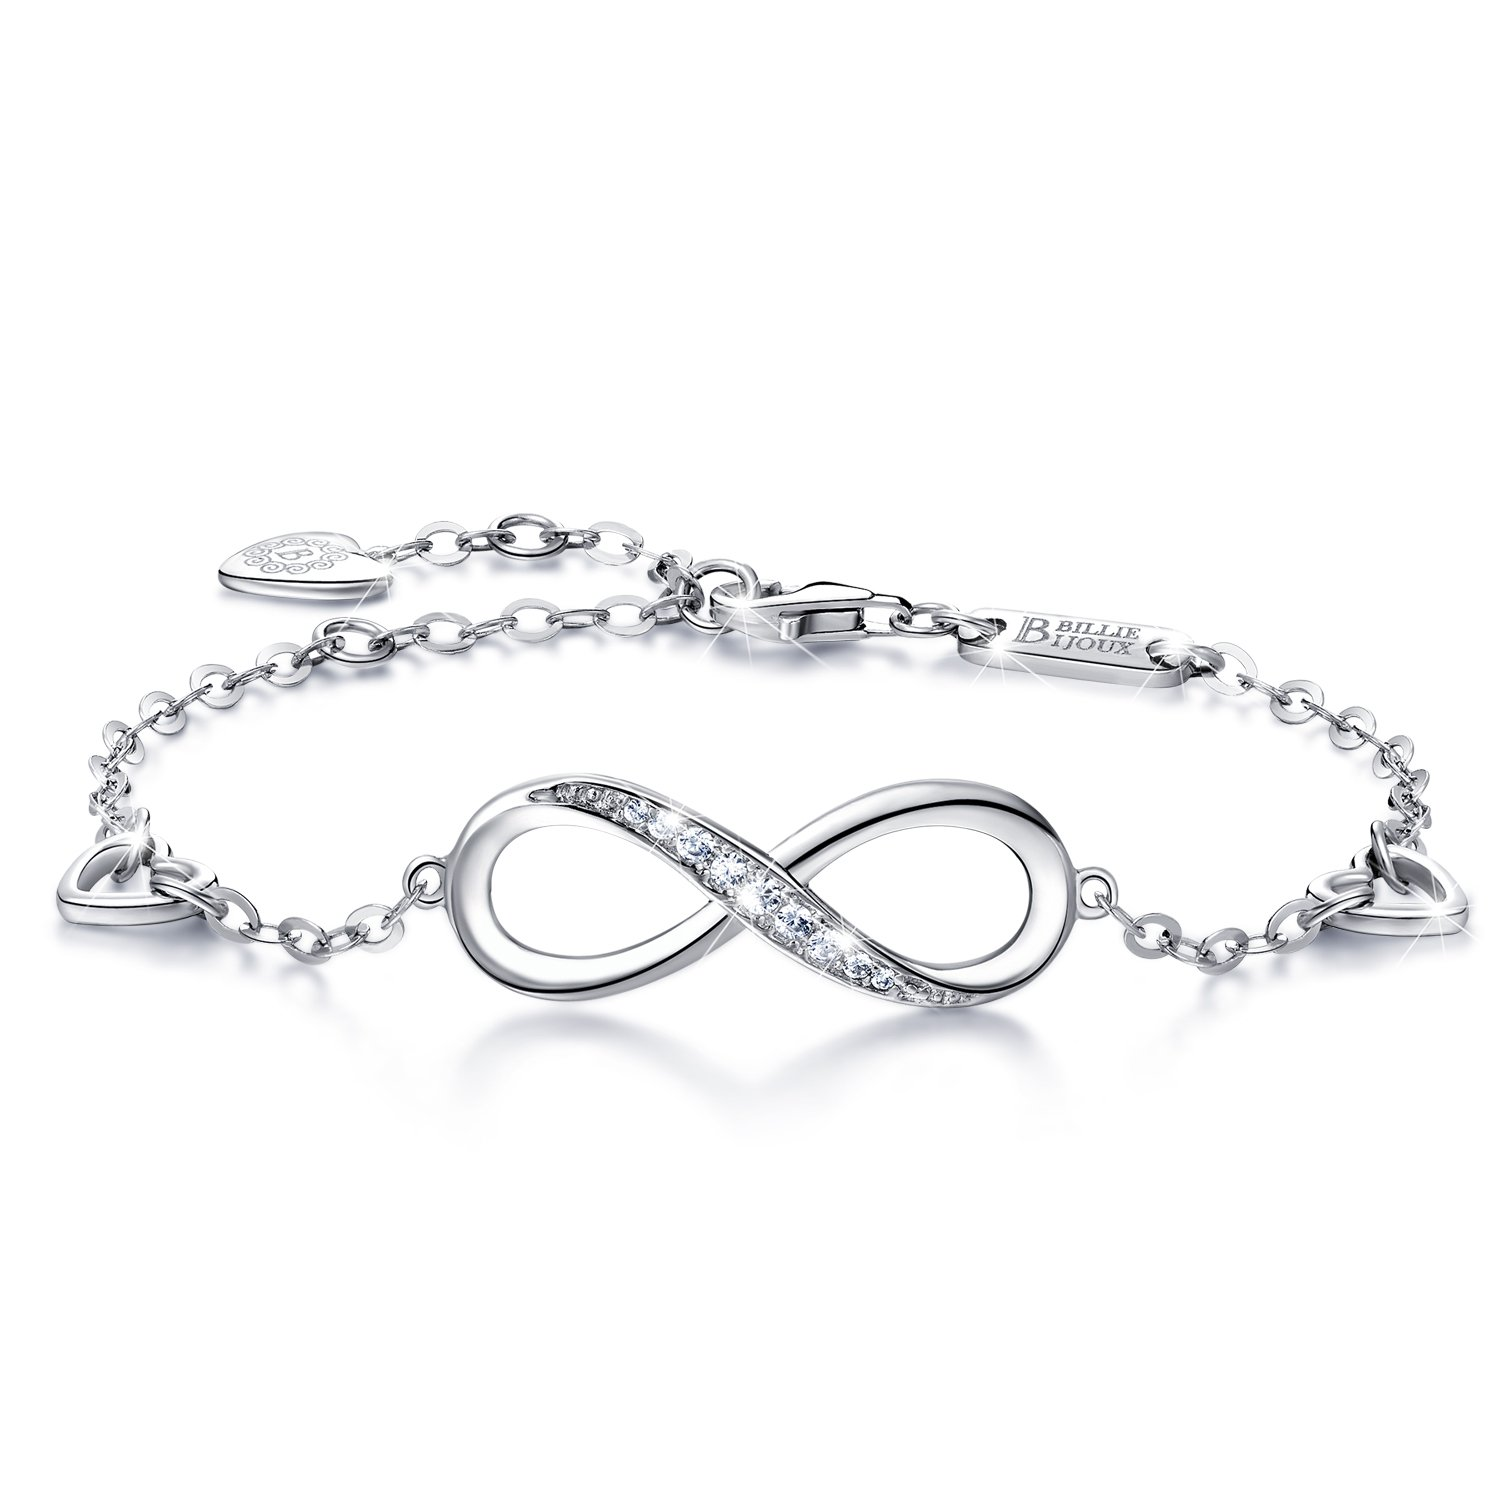 width weight sterling p bangle silver infinity grams mm bracelet length